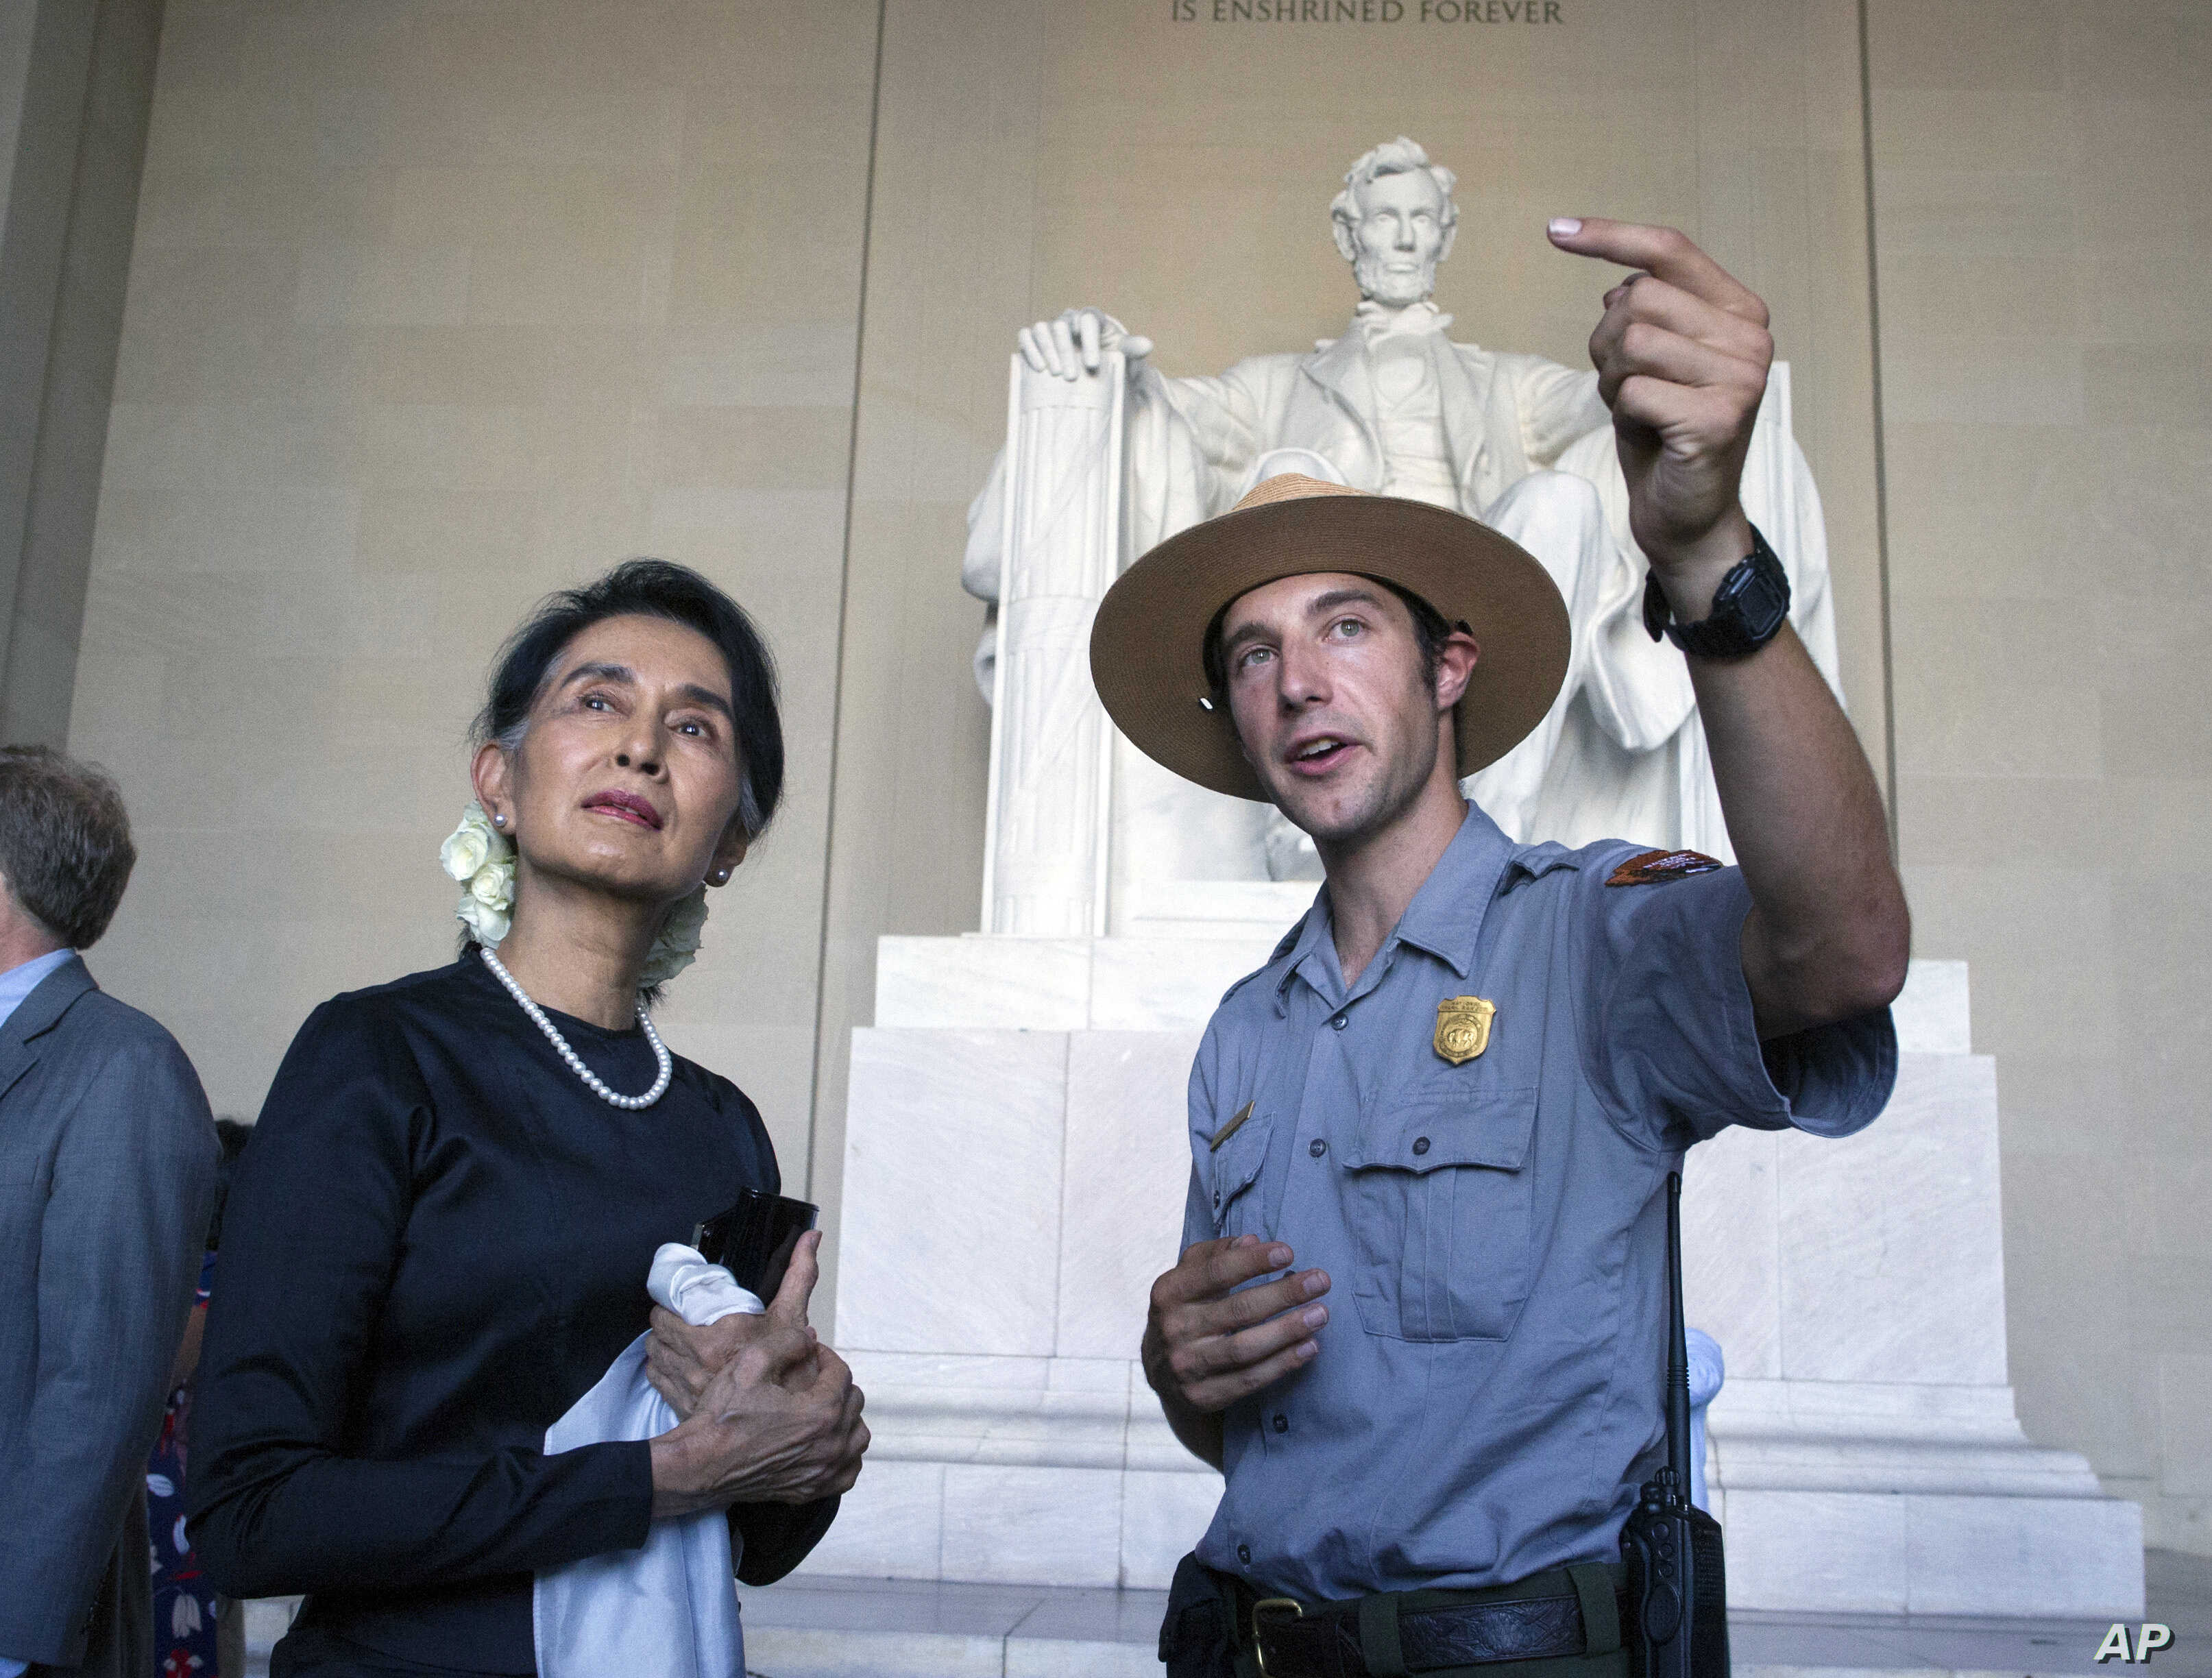 Myanmar leader Aung San Suu Kyi takes a tour of the Lincoln Memorial with National Park Service ranger Heath Mitchell in Washington, Sept. 14, 2016.